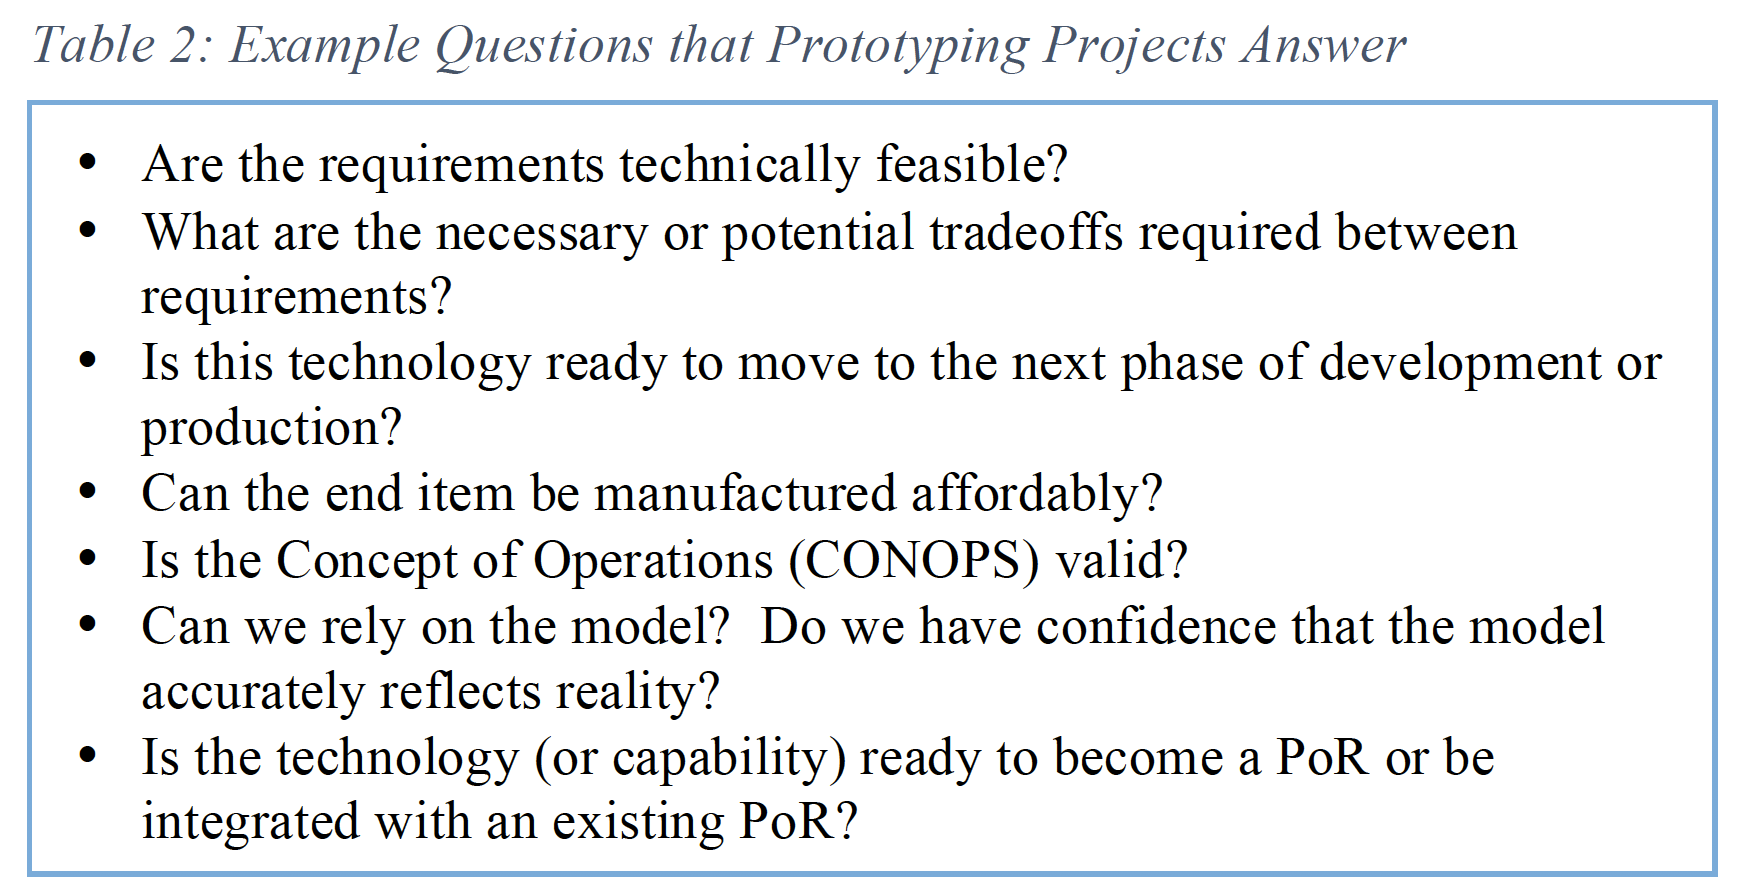 Table 2: Example Questions that Prototyping Projects Answer. Are the requirements technically feasible? What are the necessary or potential tradeoffs required between requirements? Is this technology ready to move to the next phase of development or production? Can the end item be manufactured affordably? Is the Concept of Operations (CONOPS) valid? Can we rely on the model? Do we have confidence that the model accurately reflects reality? Is the technology (or capability) ready to become a PoR or be integrated with an existing PoR?